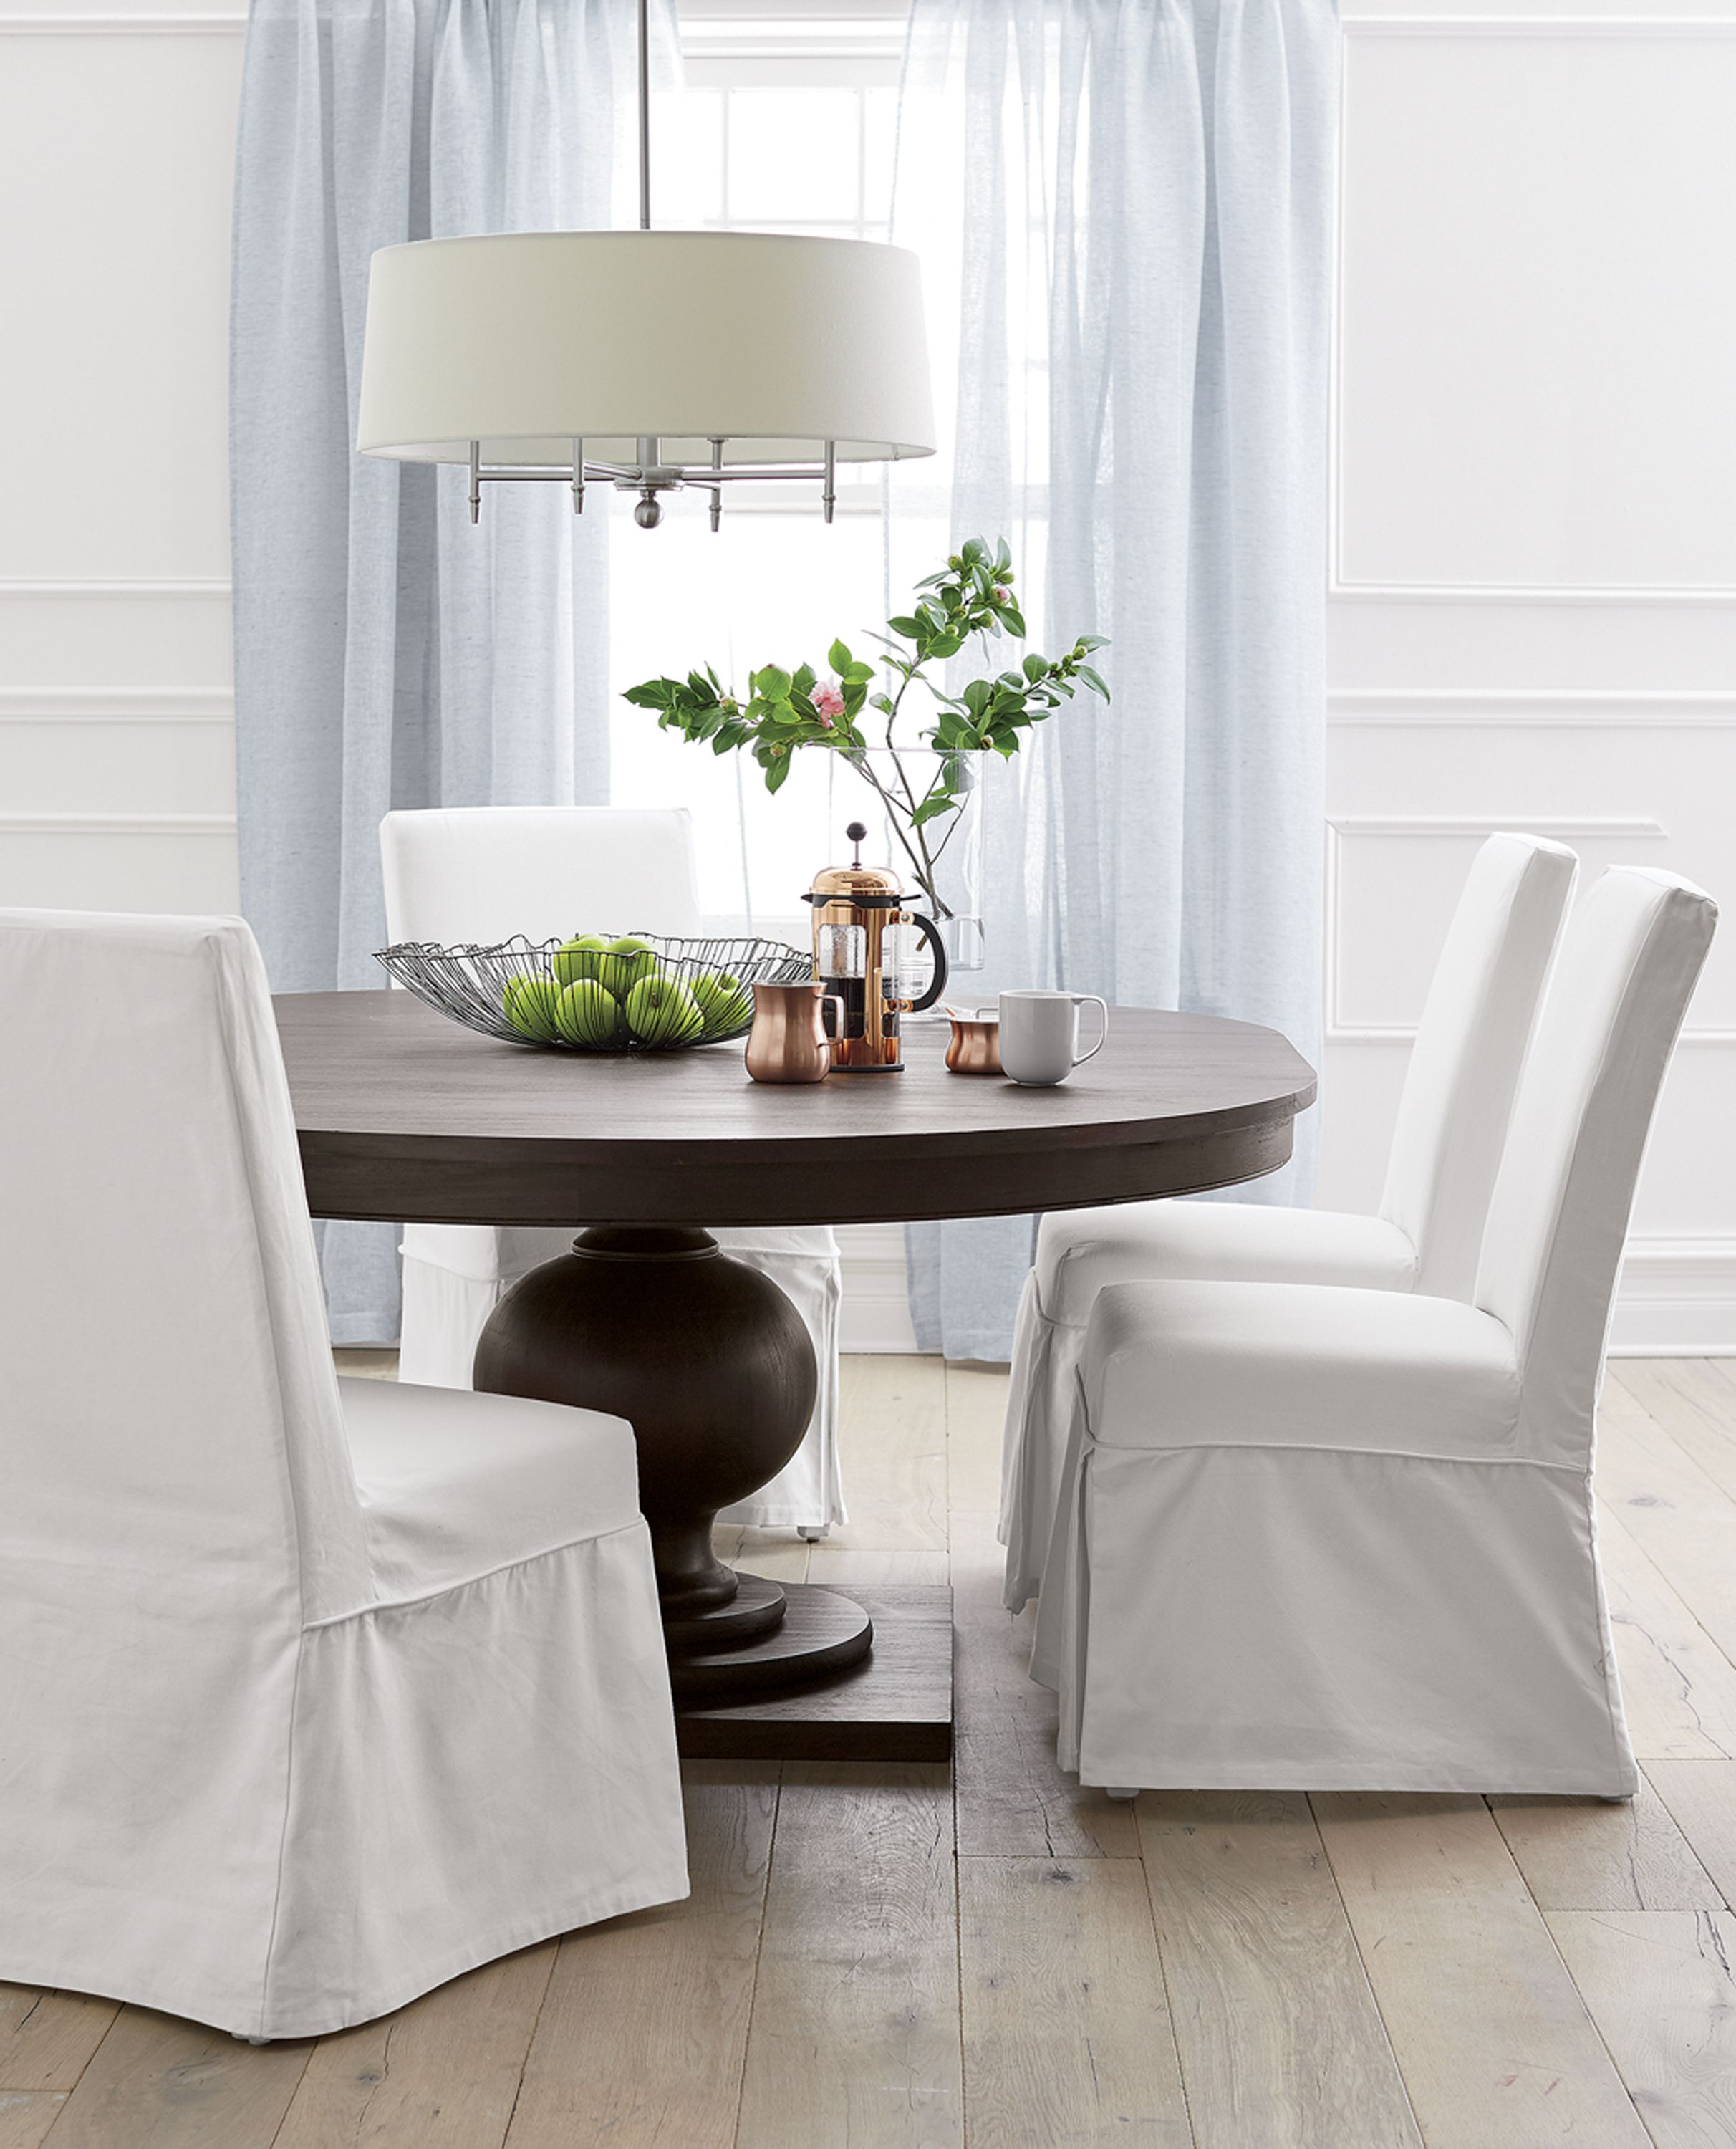 Slip White Slipcovered Dining Chair  Side Chair Room And Kitchen Alluring Slipcovered Dining Room Chairs Decorating Design